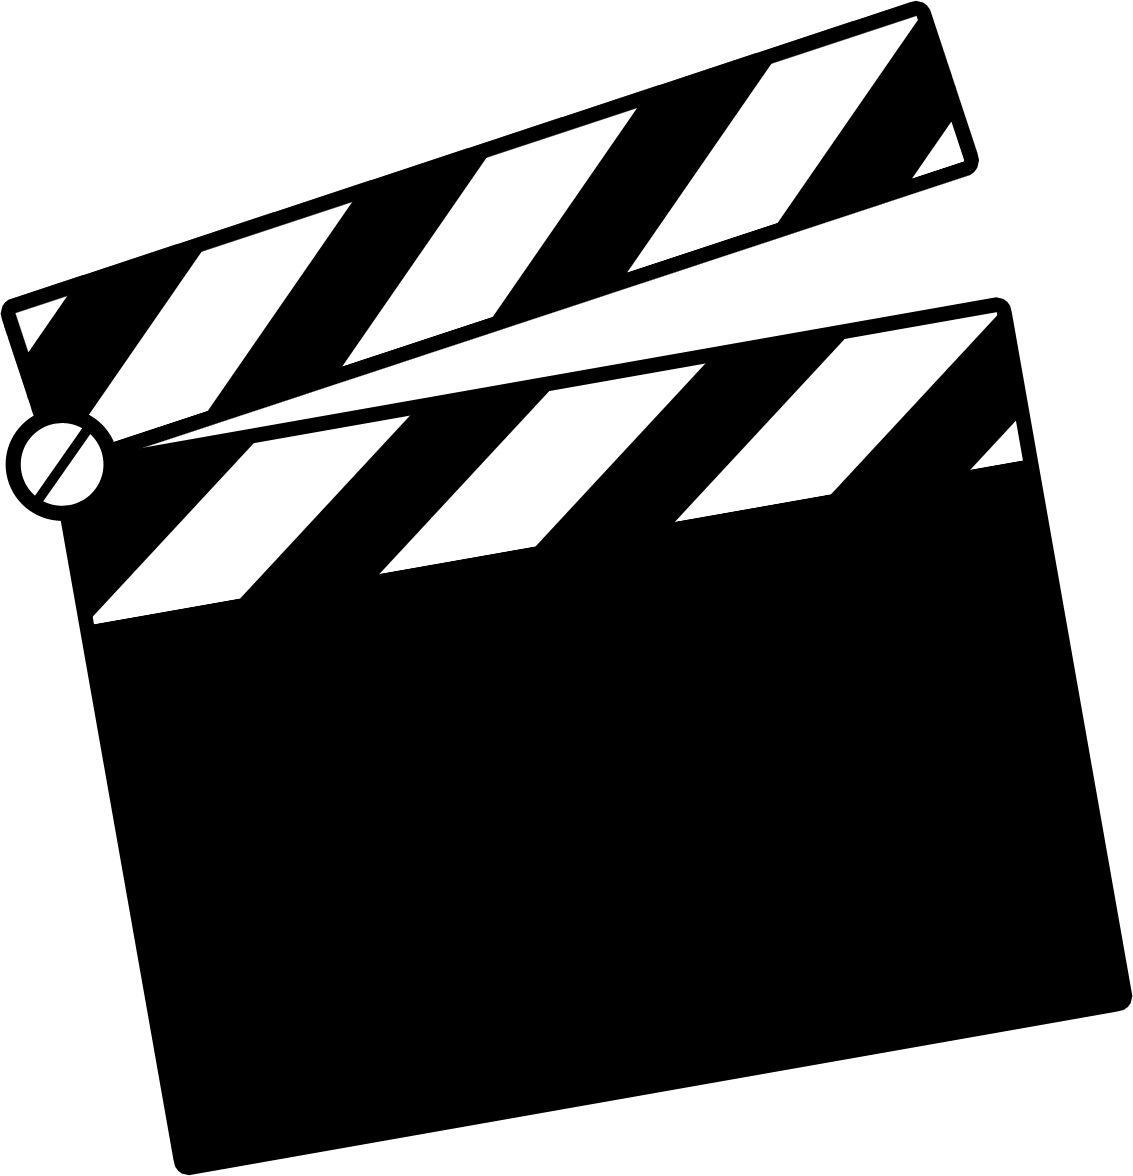 Movie Clapper Board Clipart.